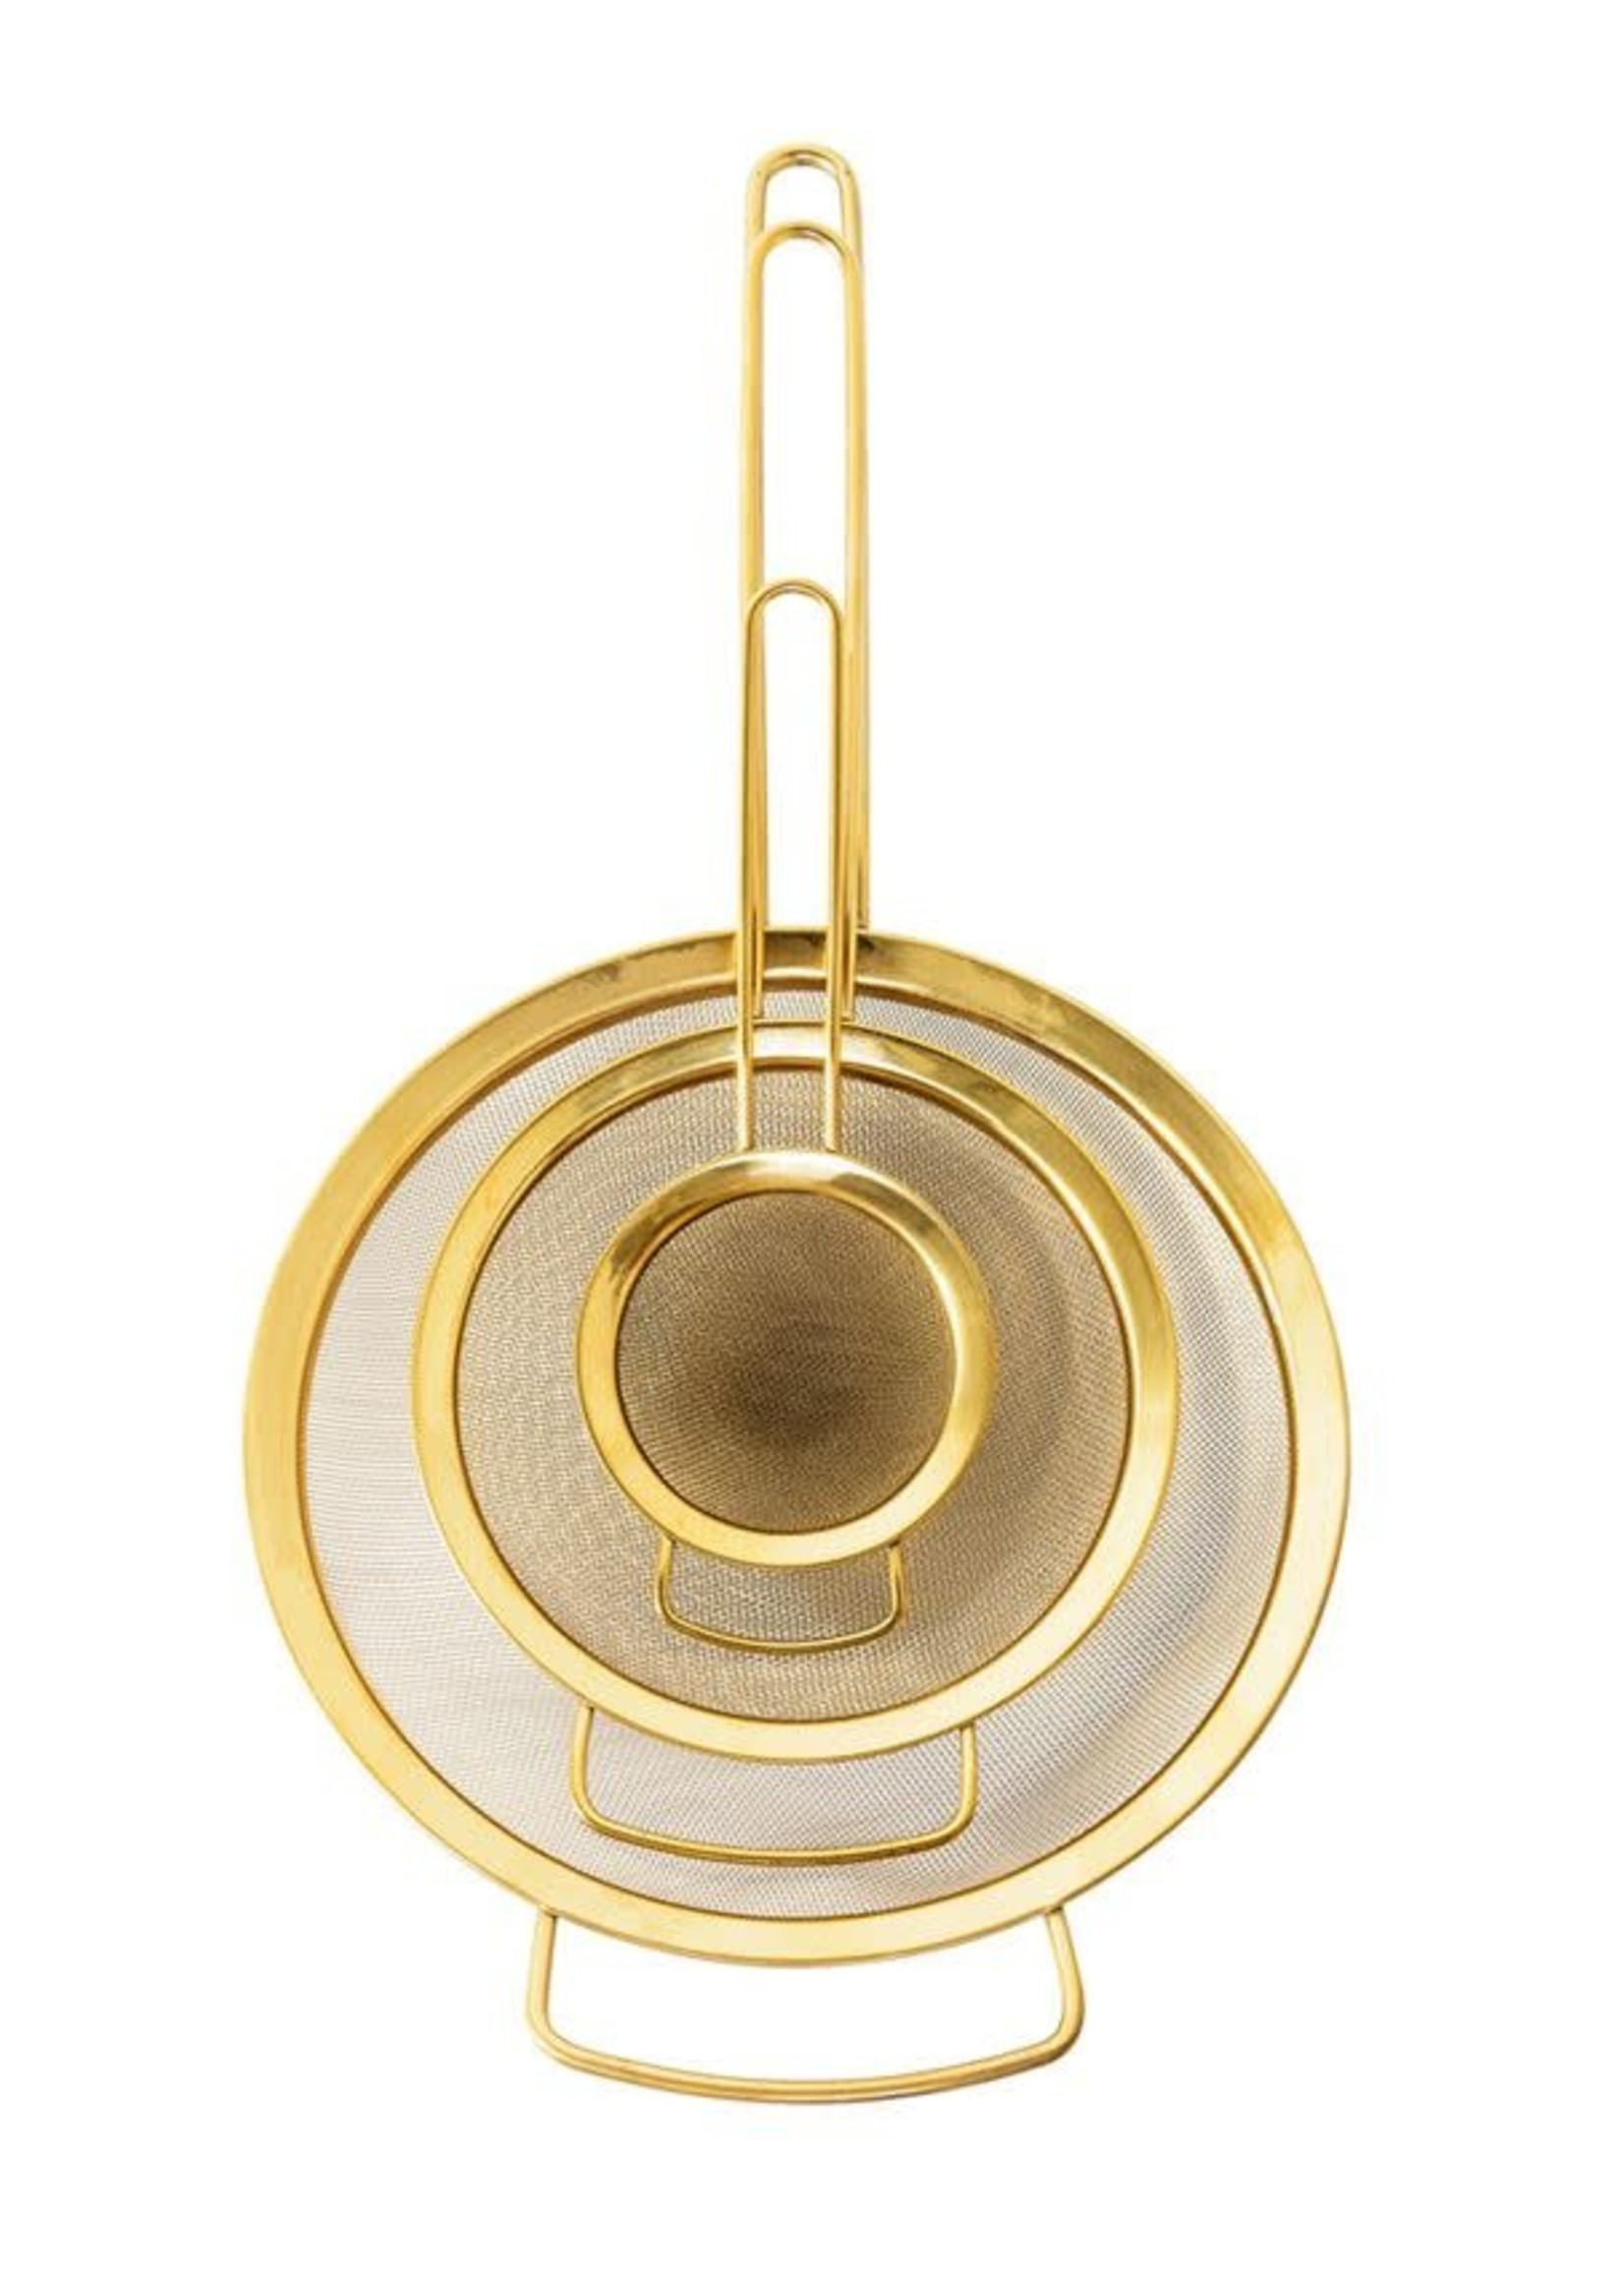 Stainless Steel Strainers, Gold Finish, Set of 3